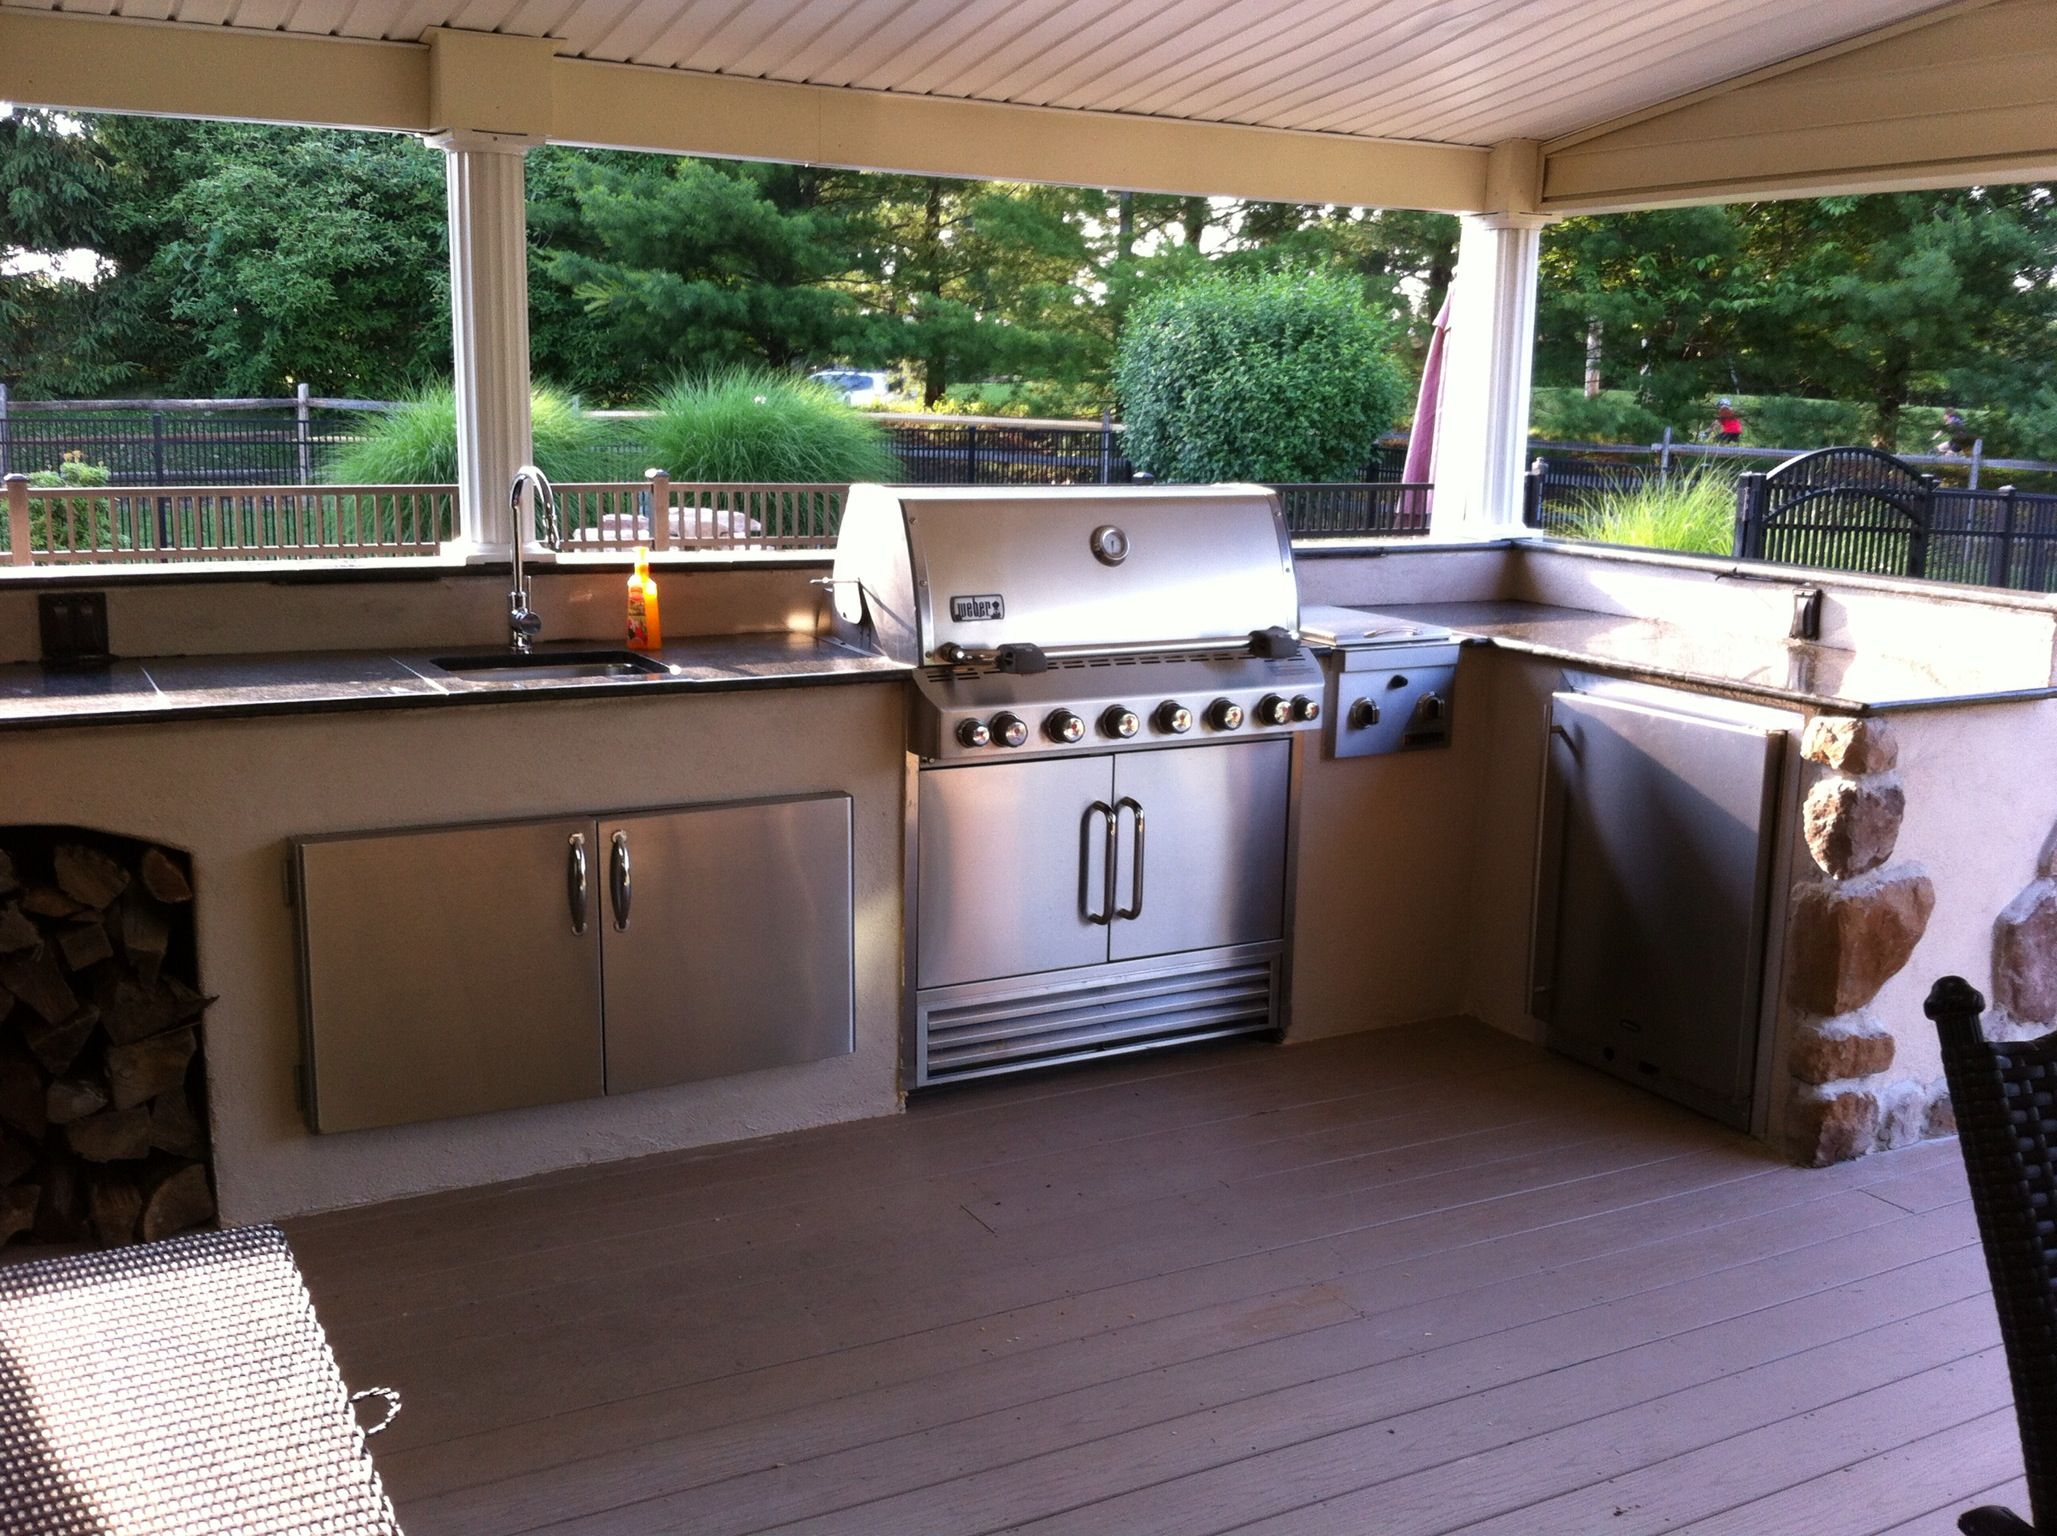 Outdoor Kitchens On A Budget Kitchen Cabinet Redooring Our Bought Everything Off Craigslist Over Year And Half Built For Only 2 800